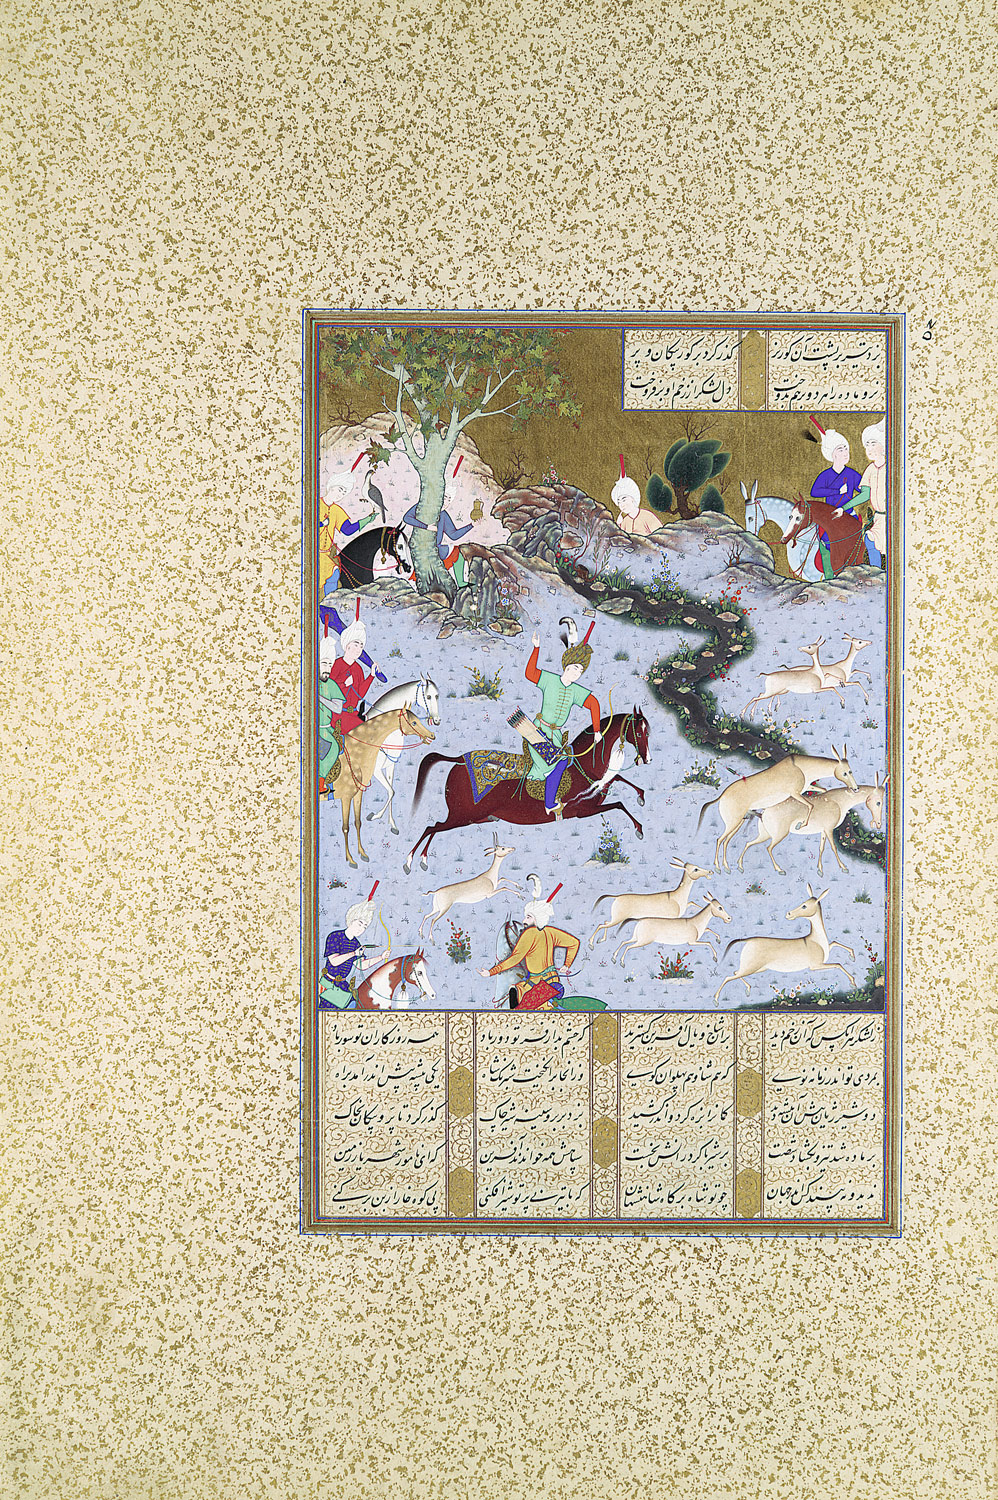 Bahram Gur Pins the Coupling Onagers, Folio 568r from the Shahnama (Book of Kings) of Shah Tahmasp